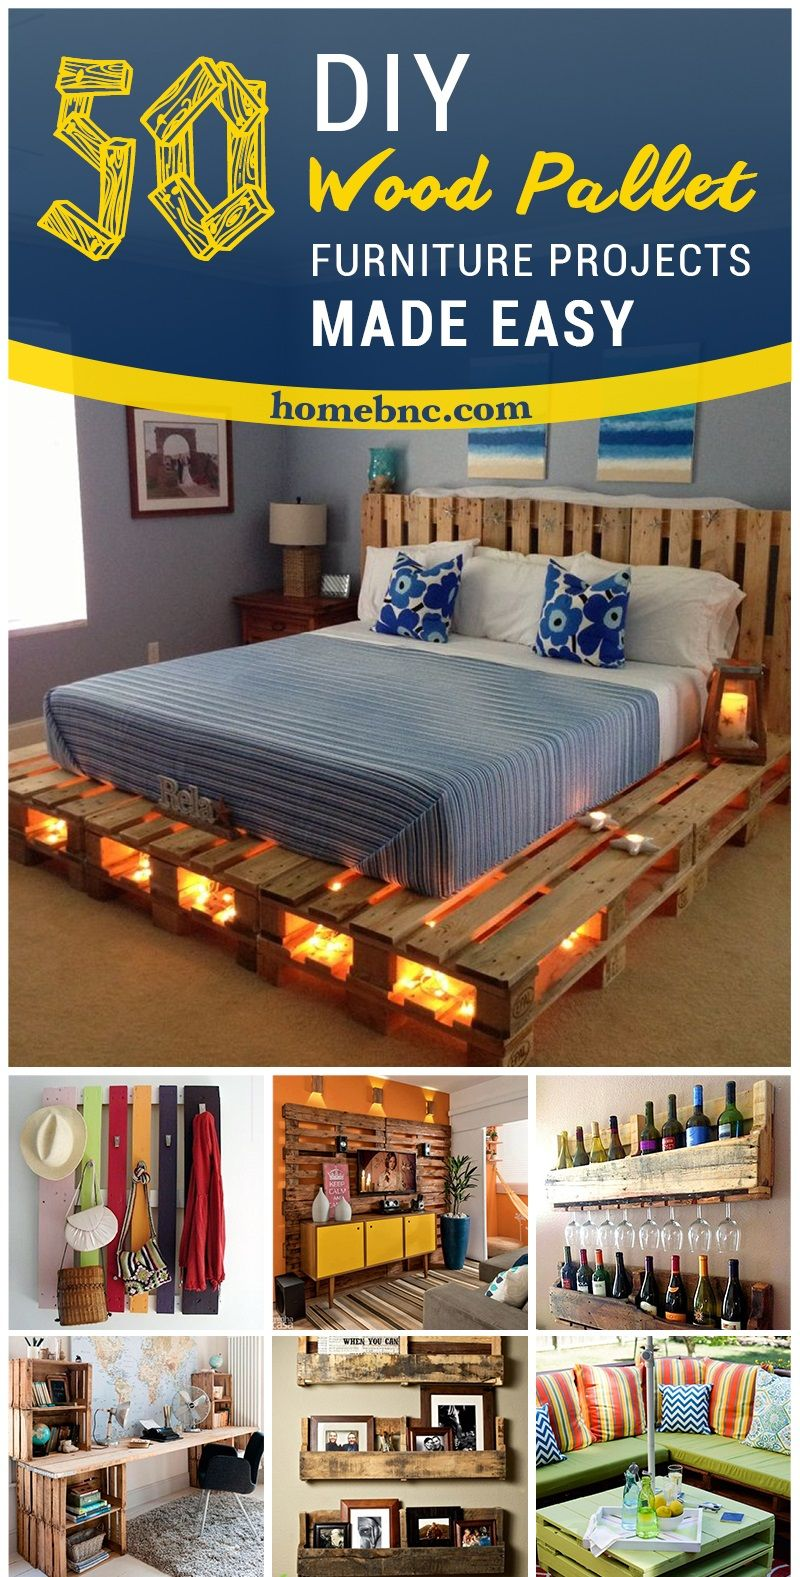 here are some of the absolute best pallet furniture ideas for home